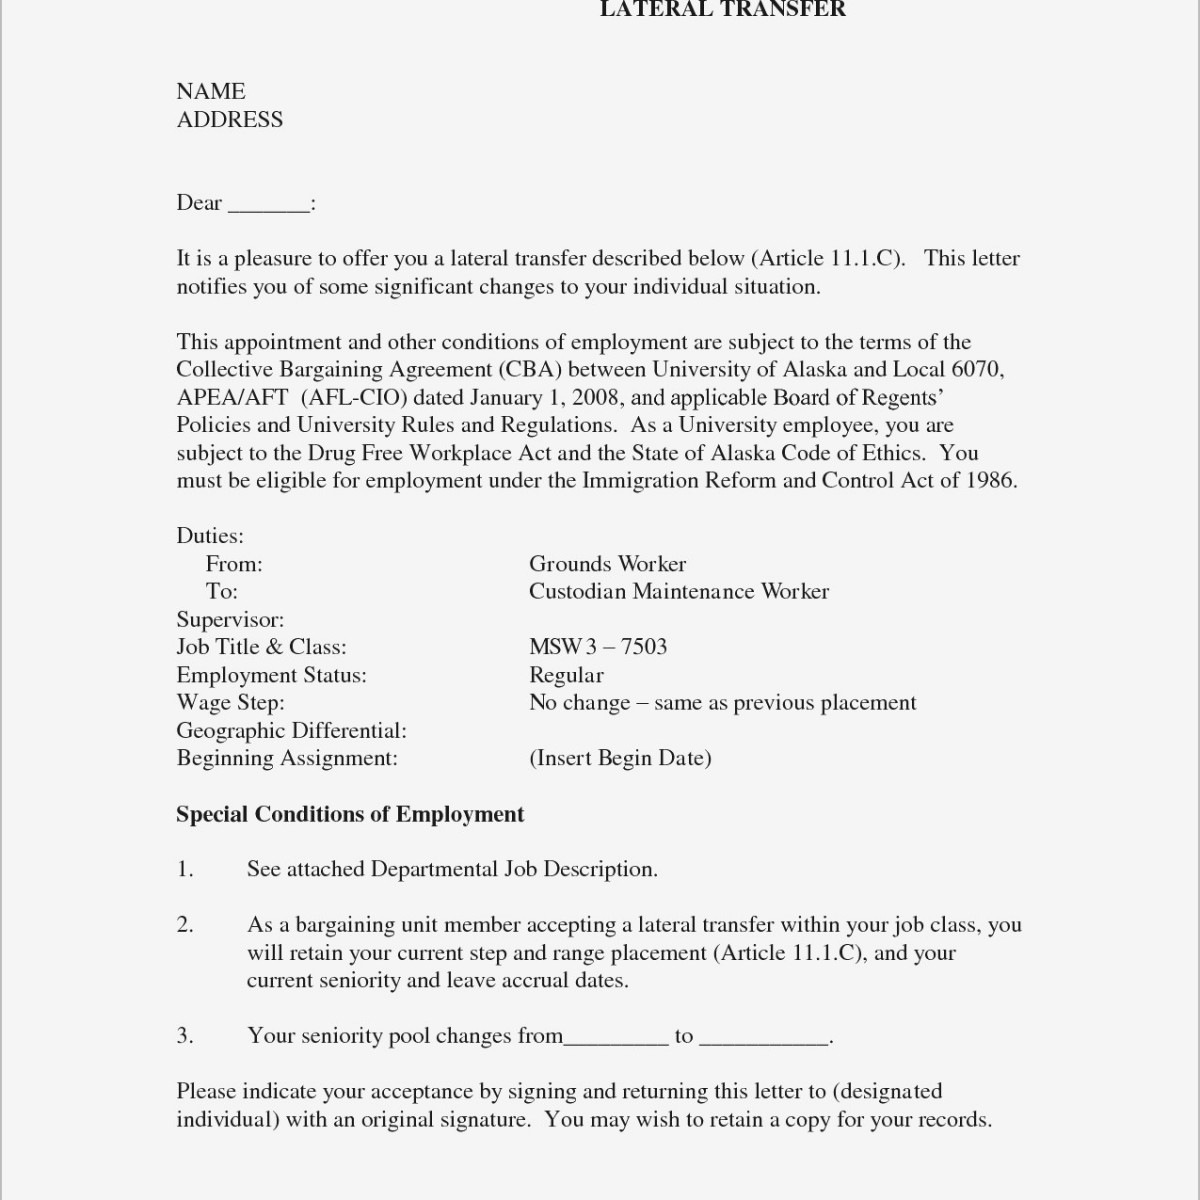 sample technical resume example-Sample Technical Resume Fresh Tech Resume Best Great Resume Examples Awesome Fresh Resume 0d 4-p